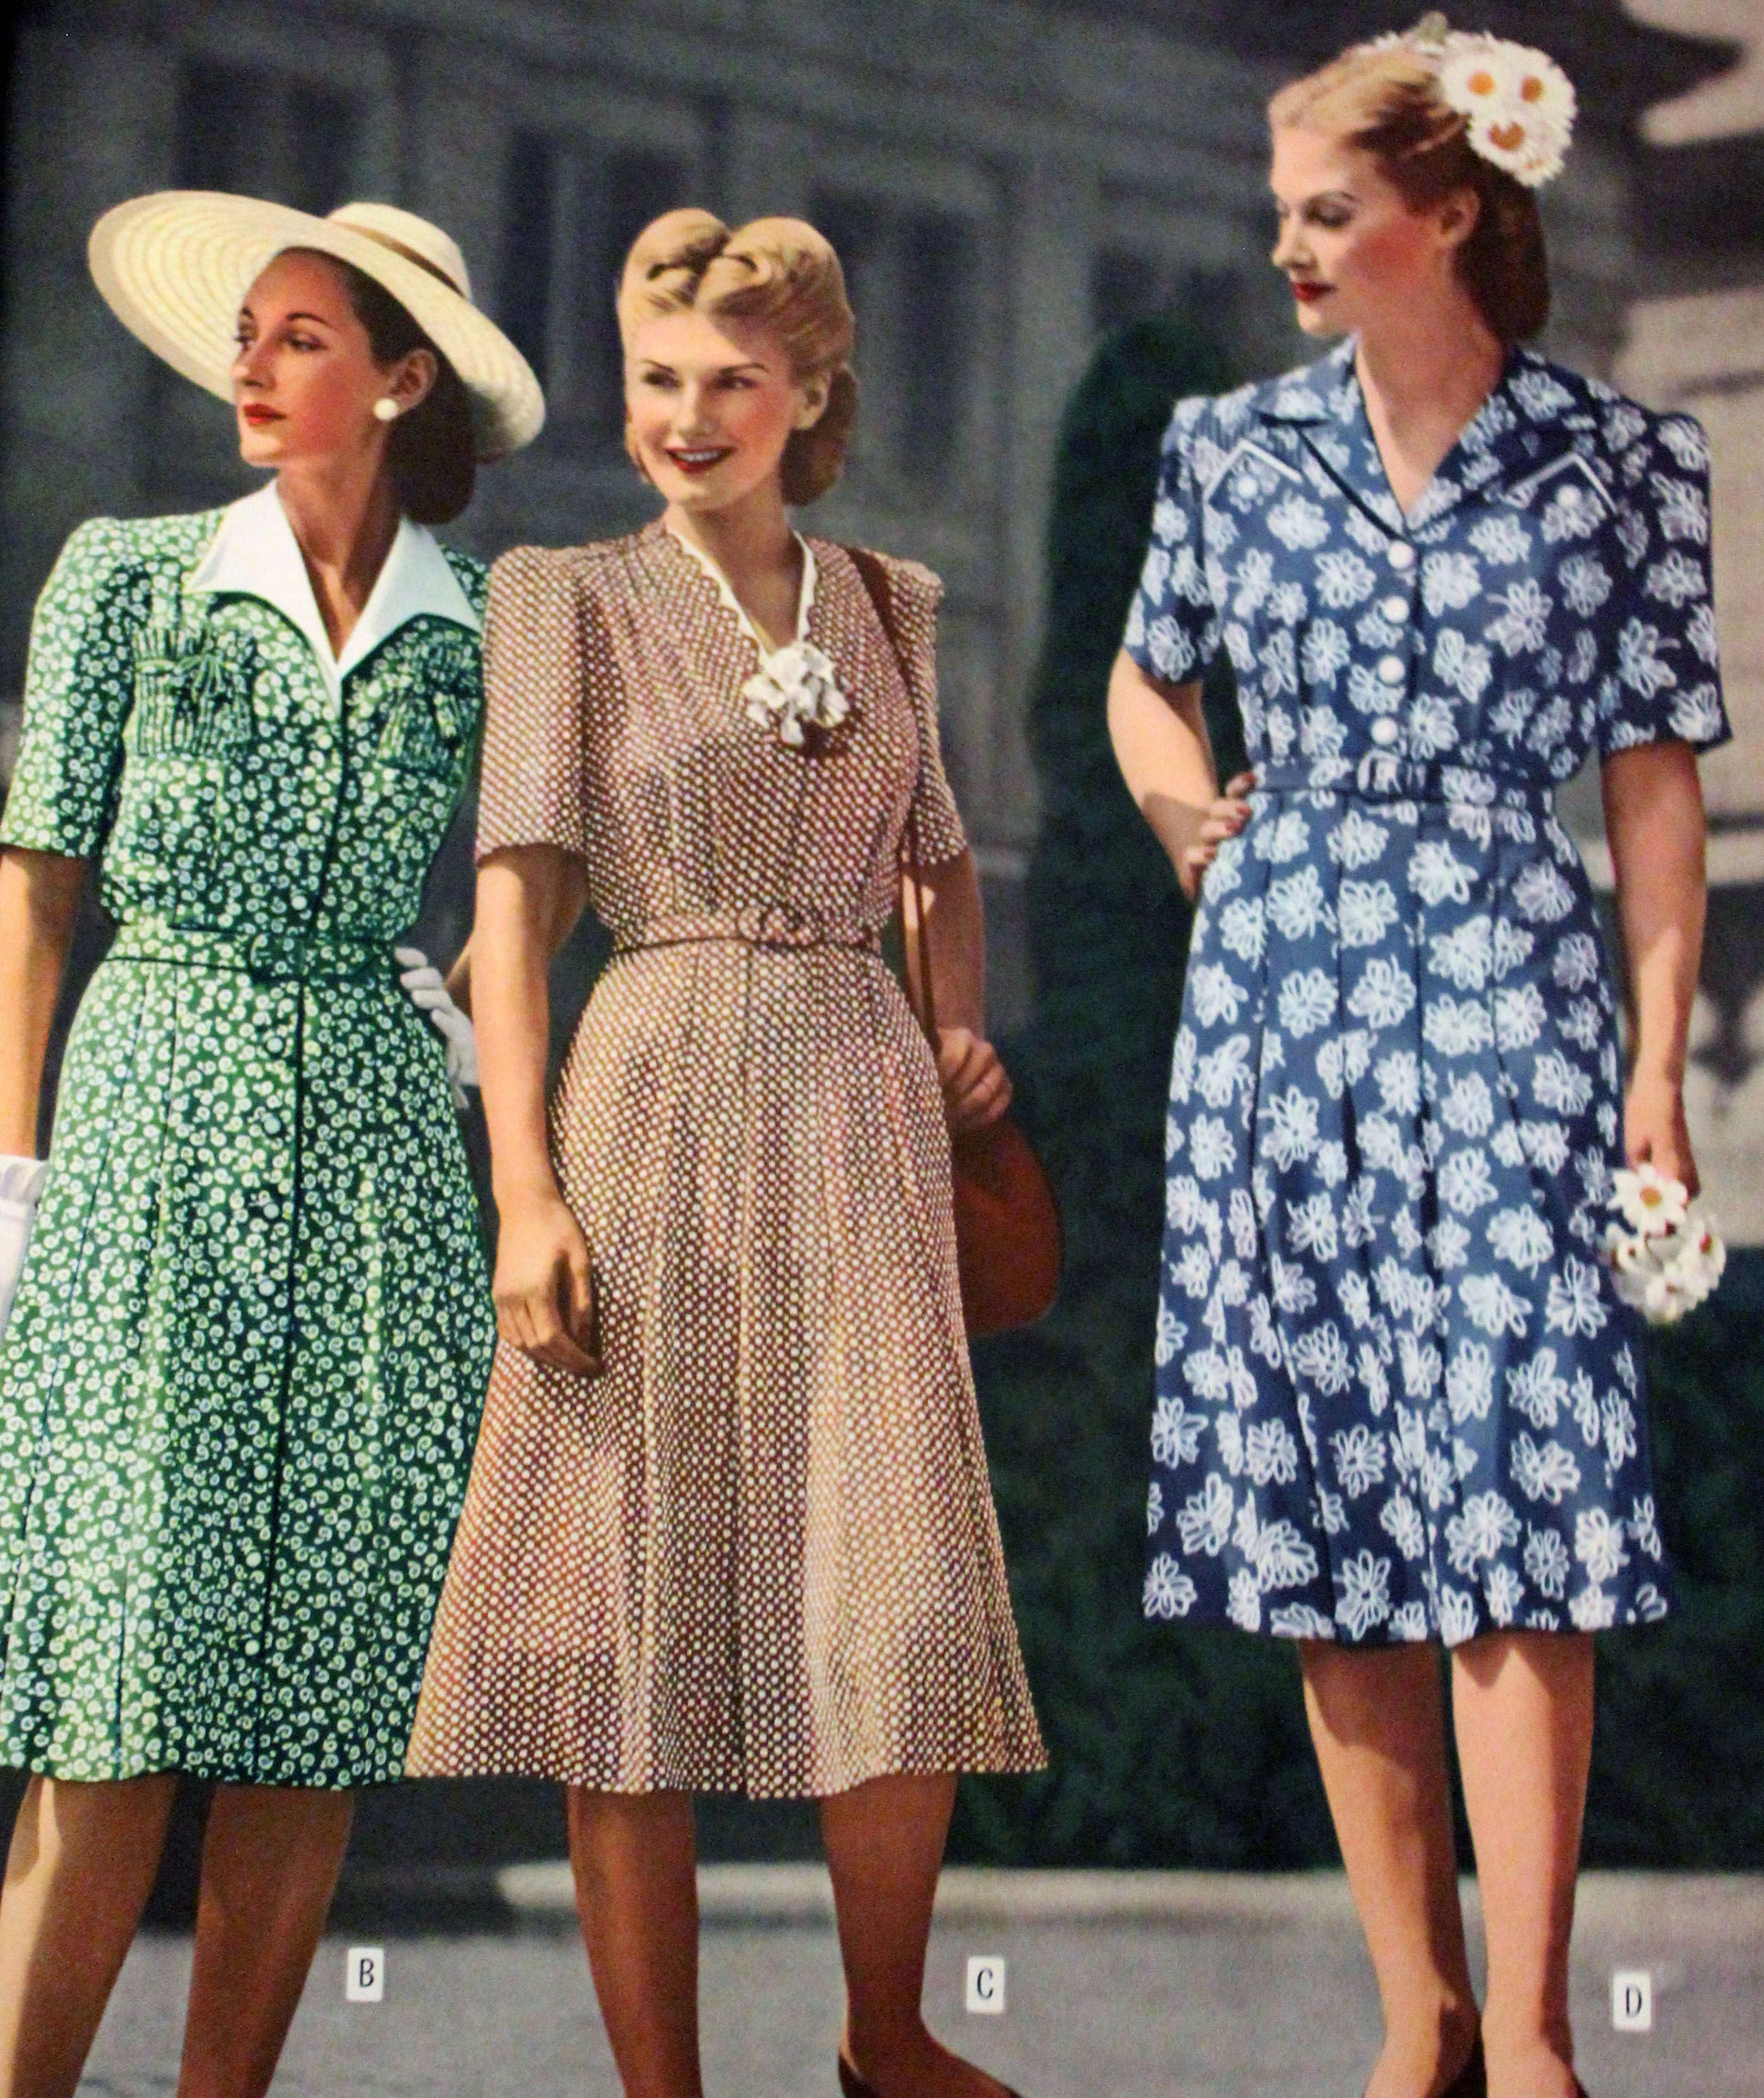 Women?s 1940s casual fashion